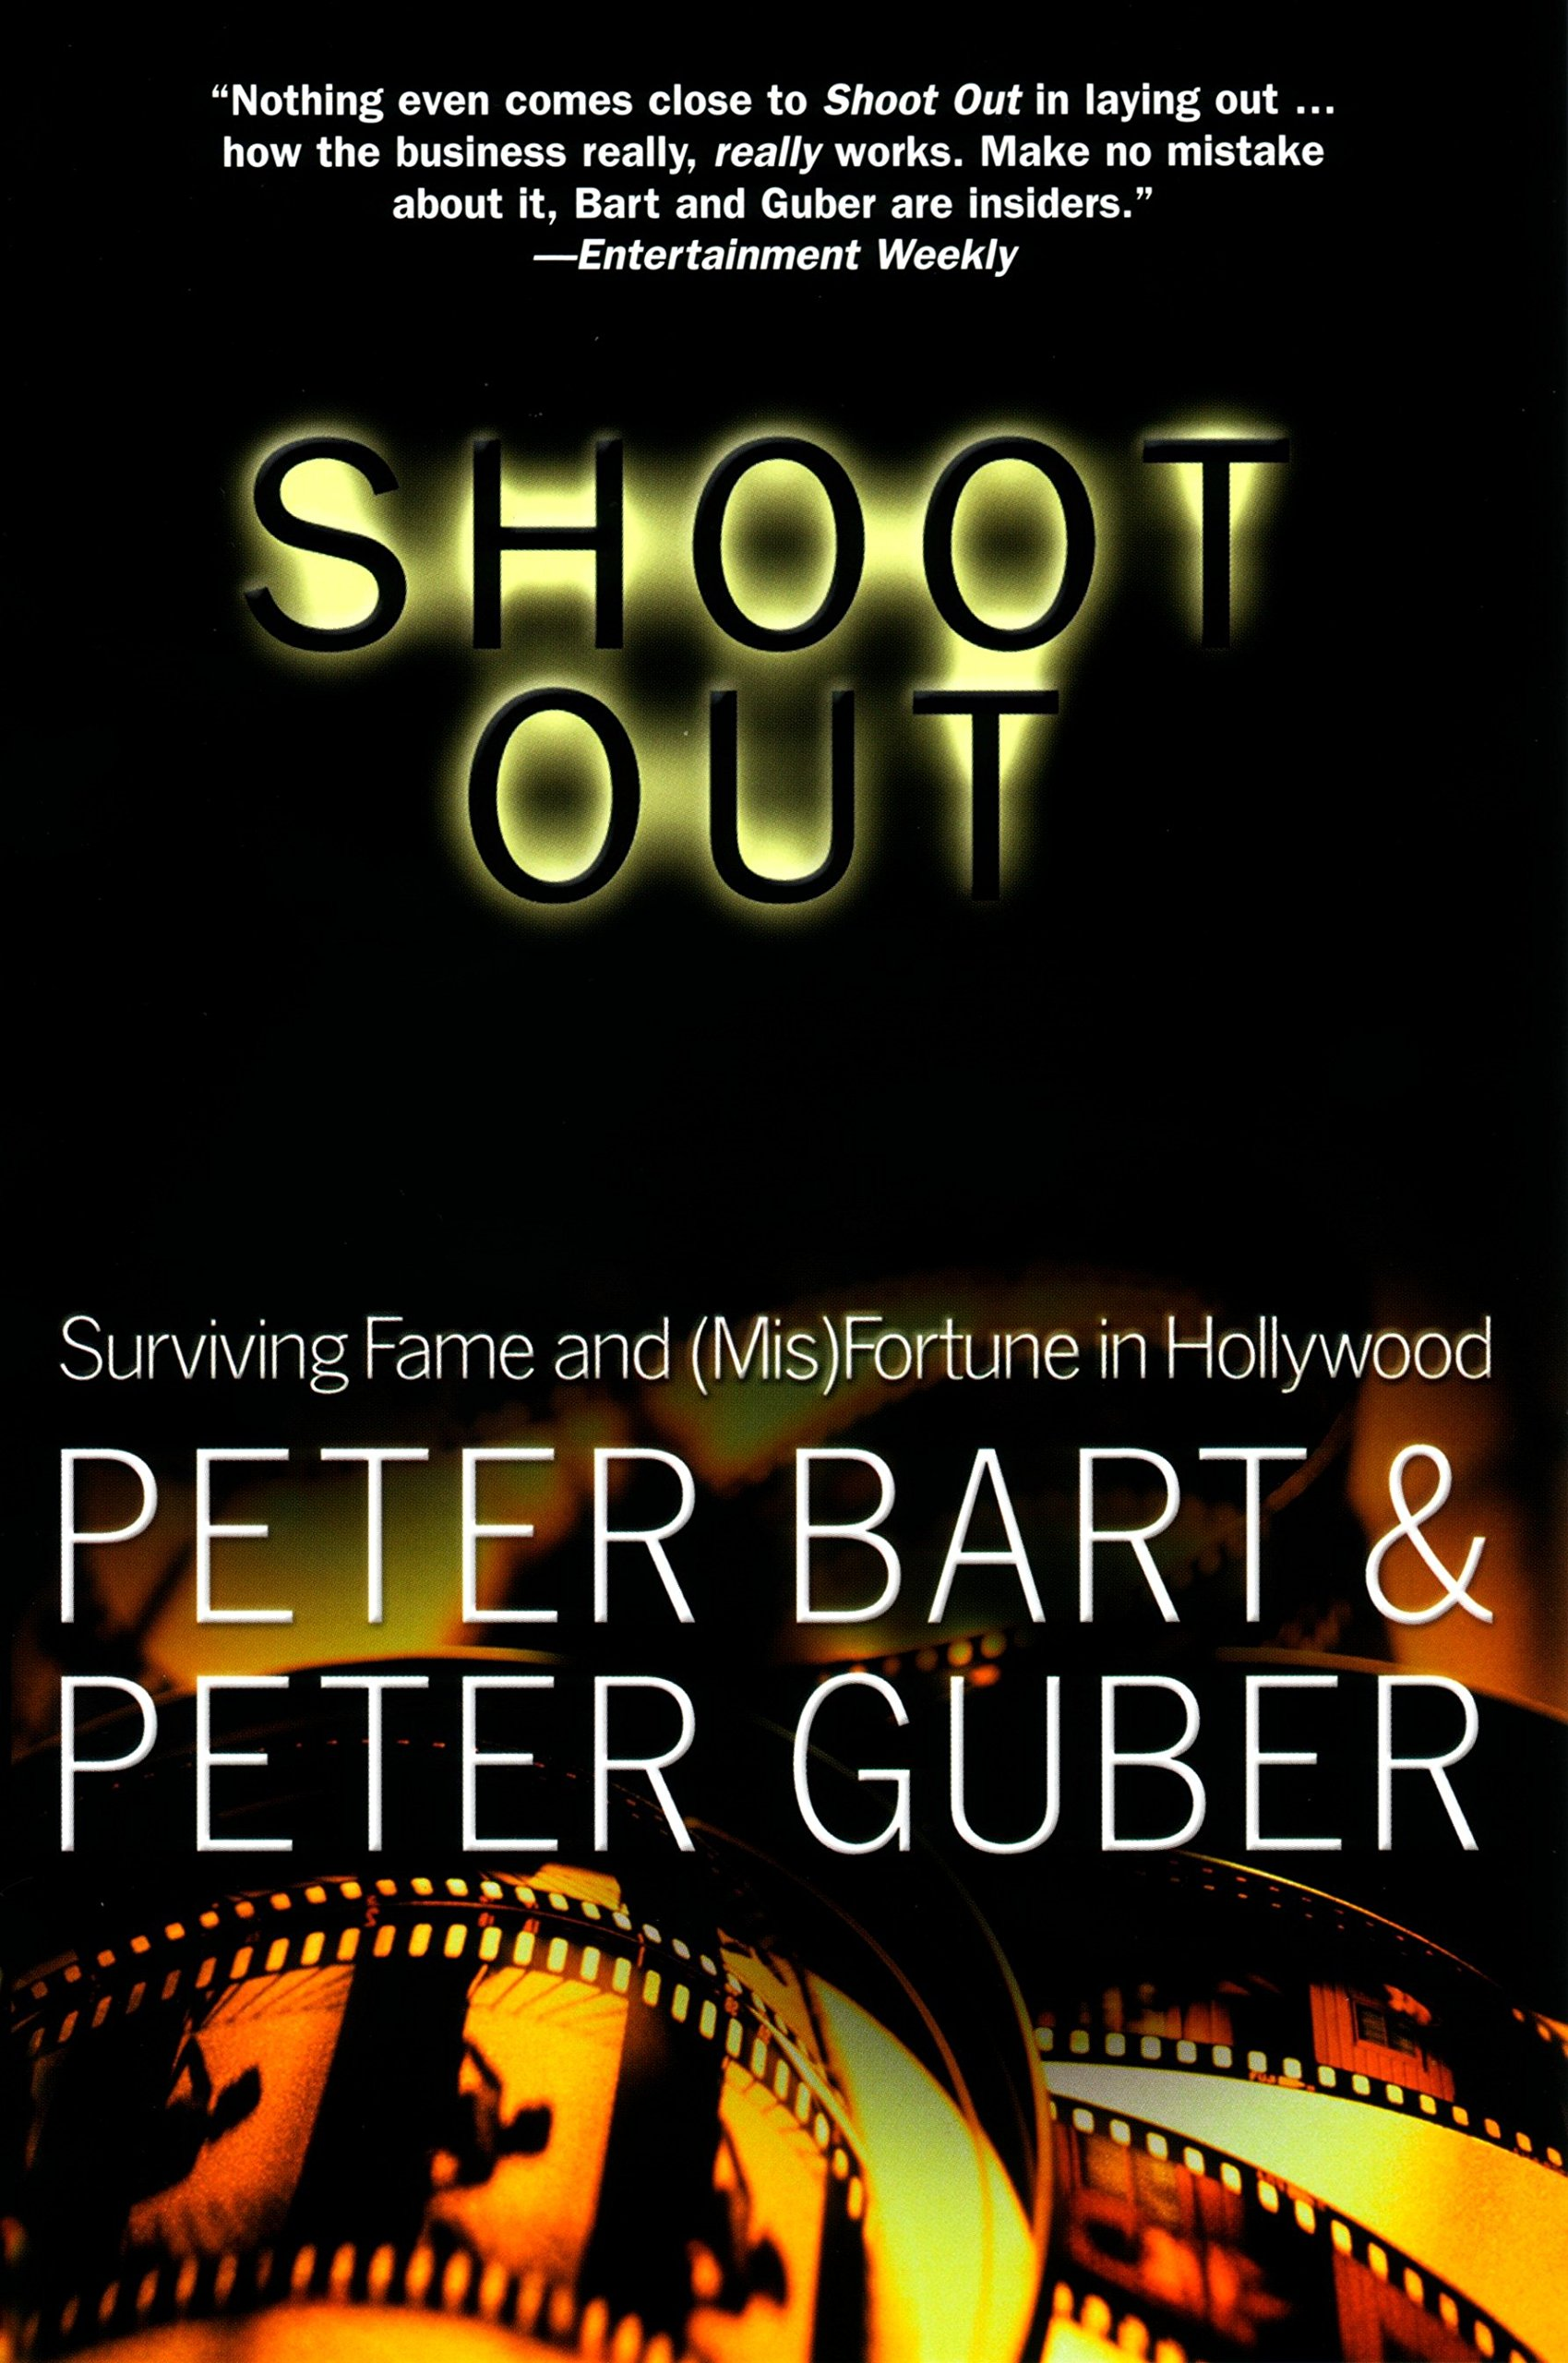 GUBER PETERS SONY EBOOK EBOOK DOWNLOAD